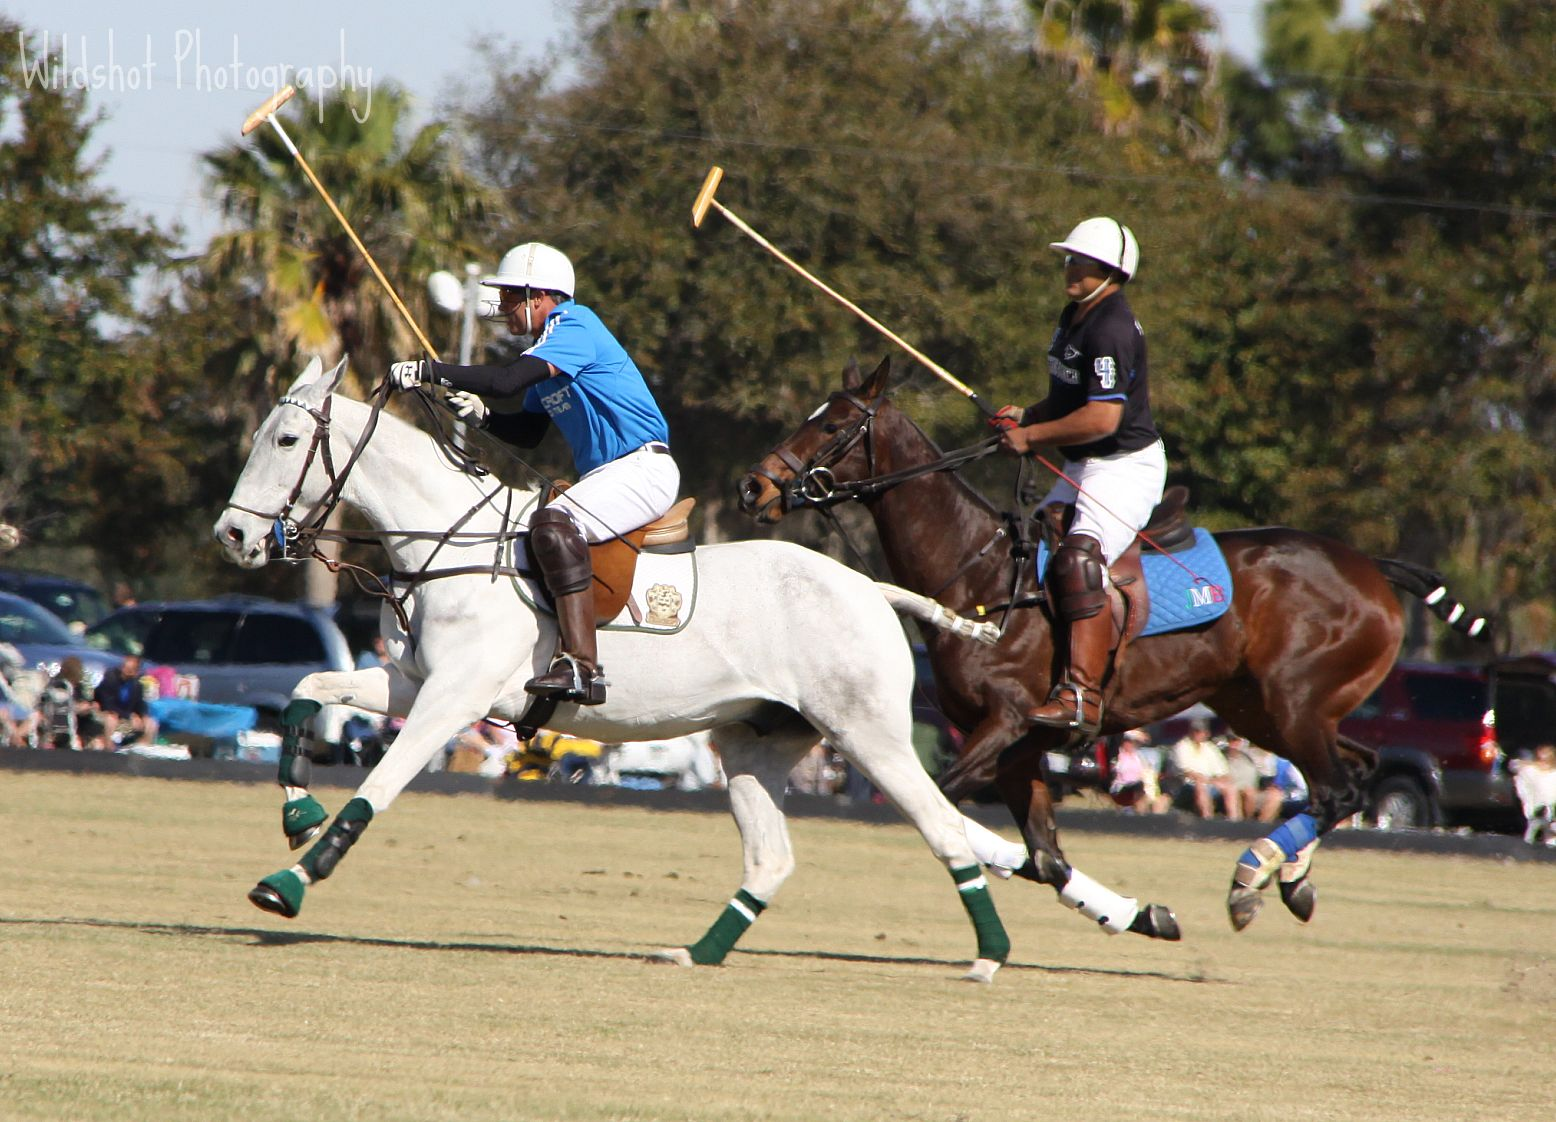 game 1 3 polo match. Black Bedroom Furniture Sets. Home Design Ideas